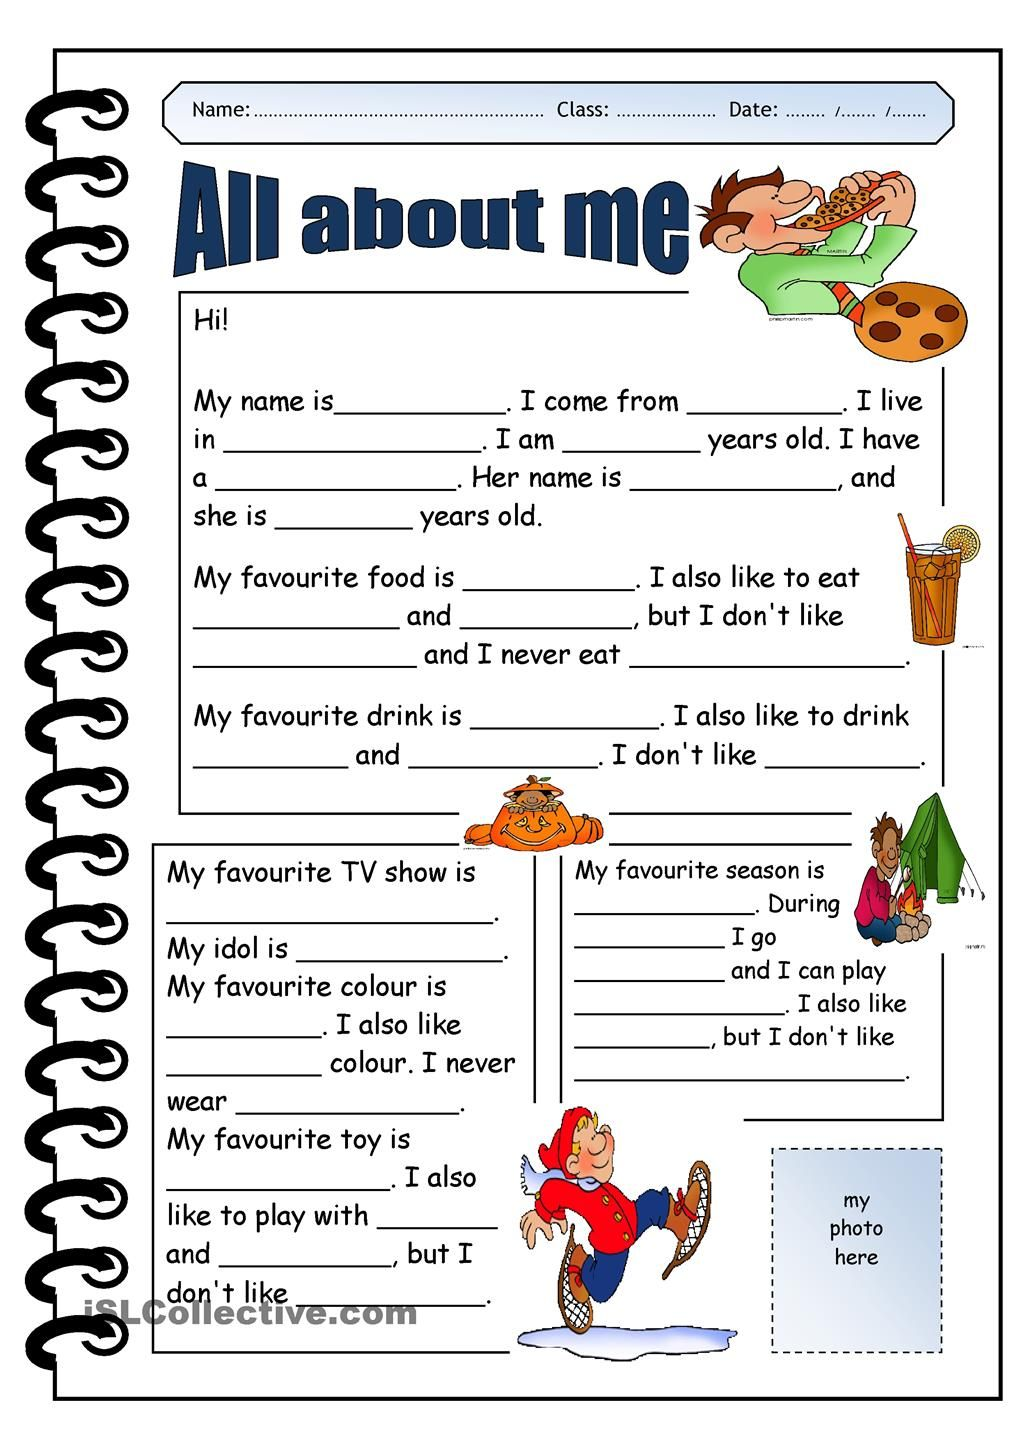 worksheet All About Me Worksheet For Adults 78 images about all me worksheets on pinterest getting to know first day of school and me